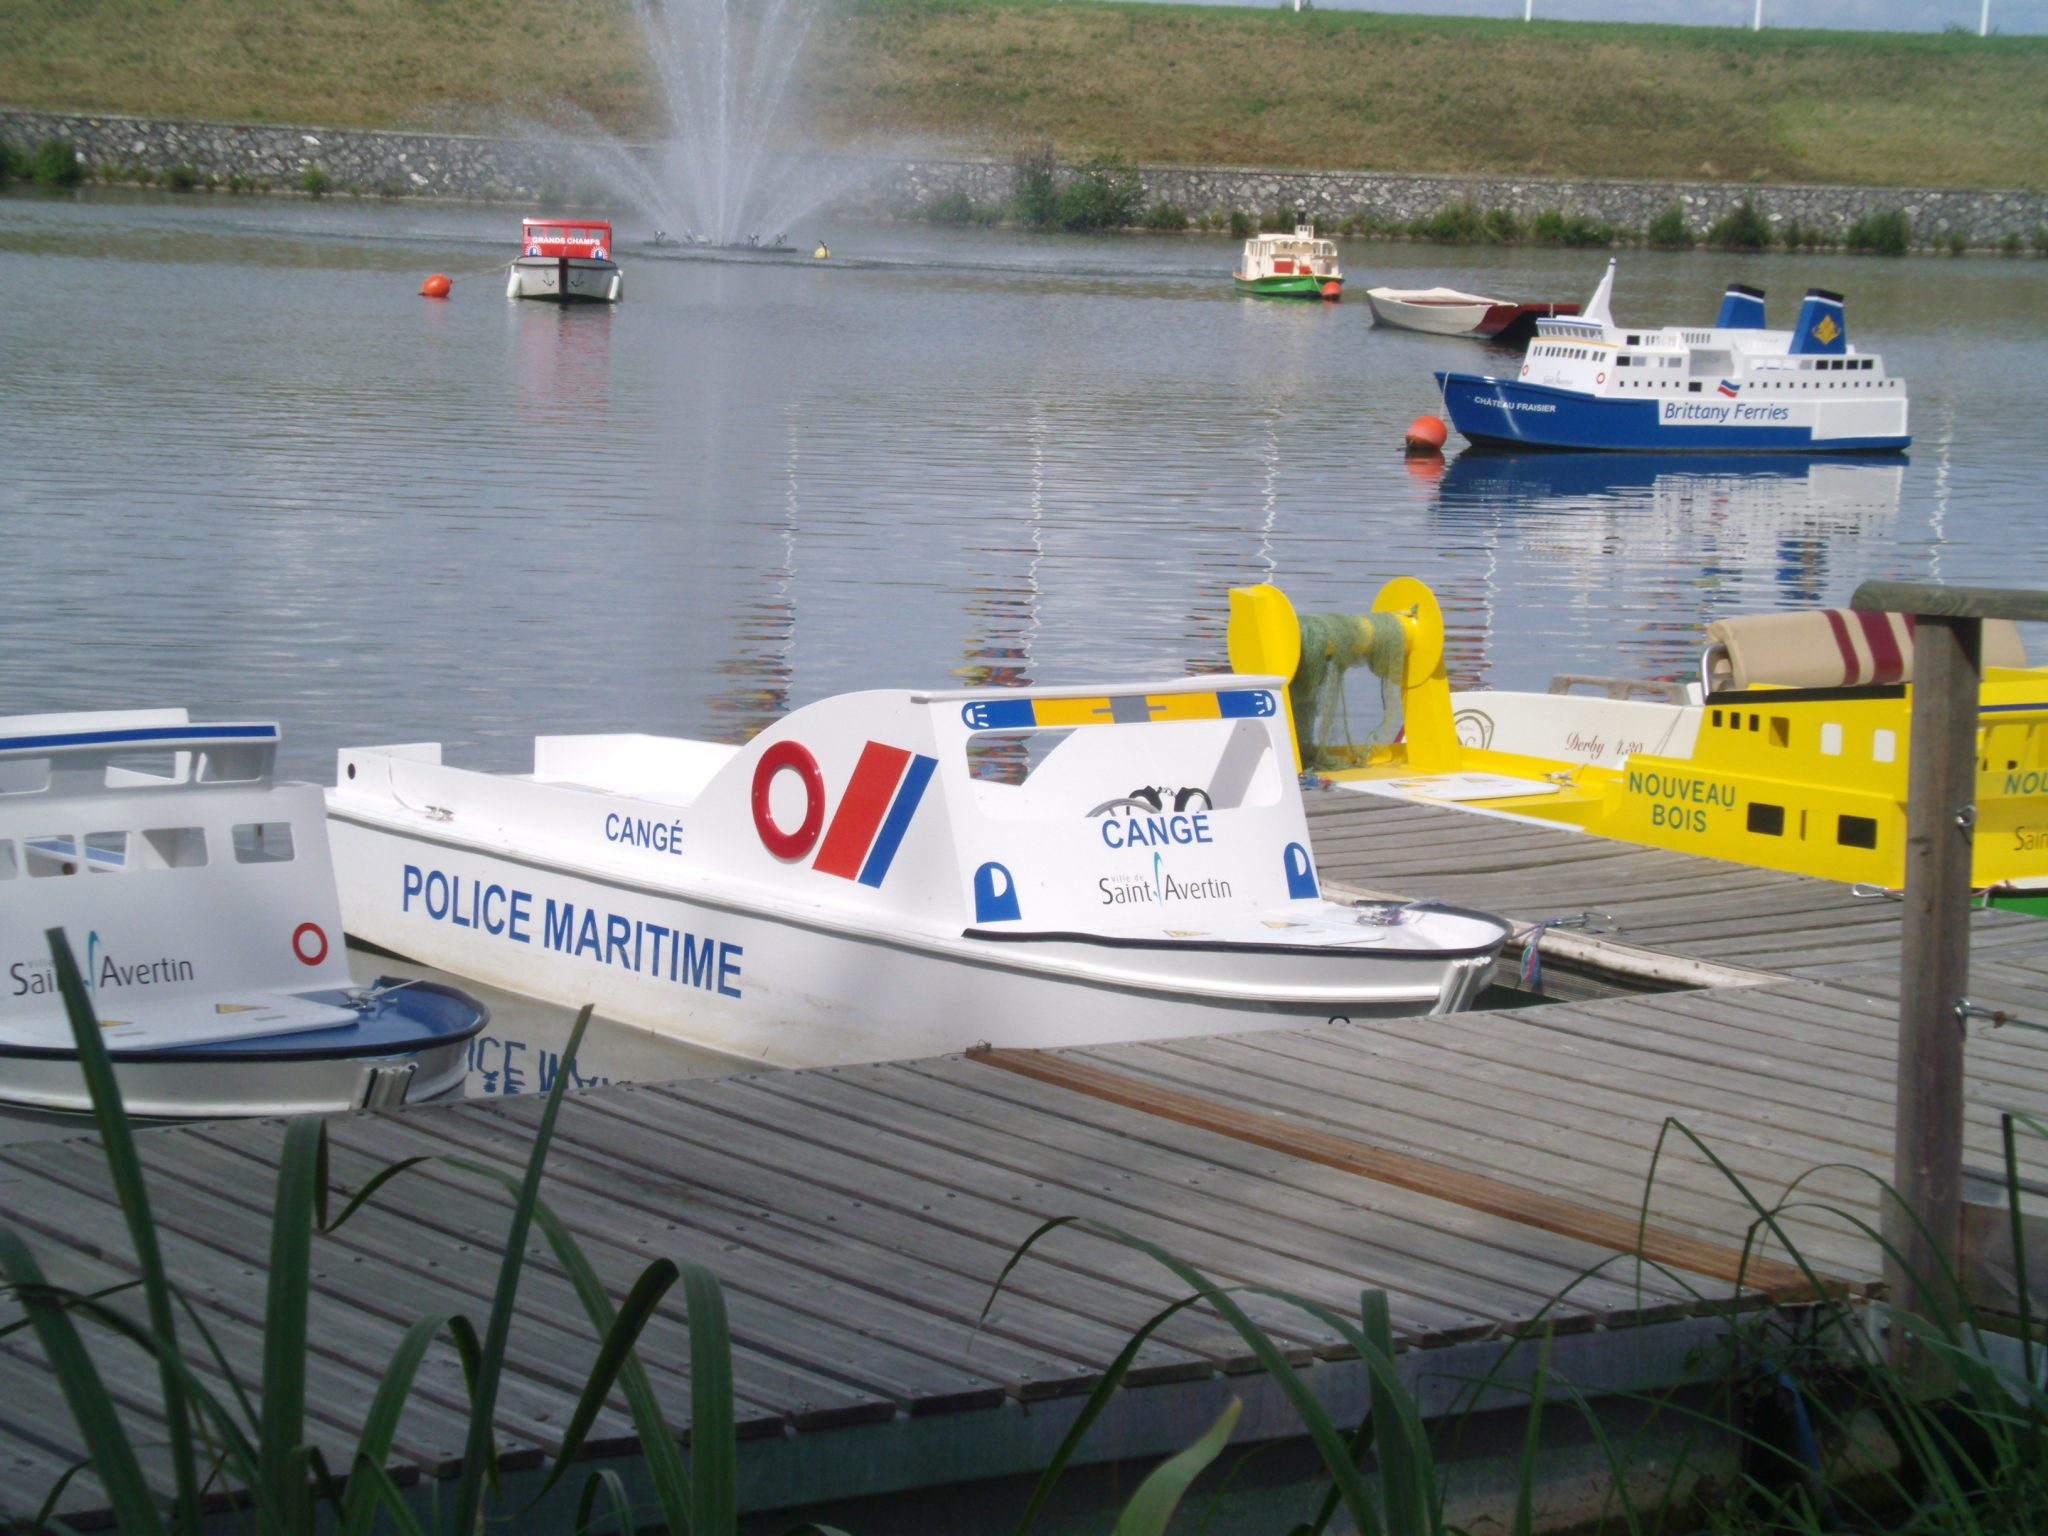 A themed electric boat for children